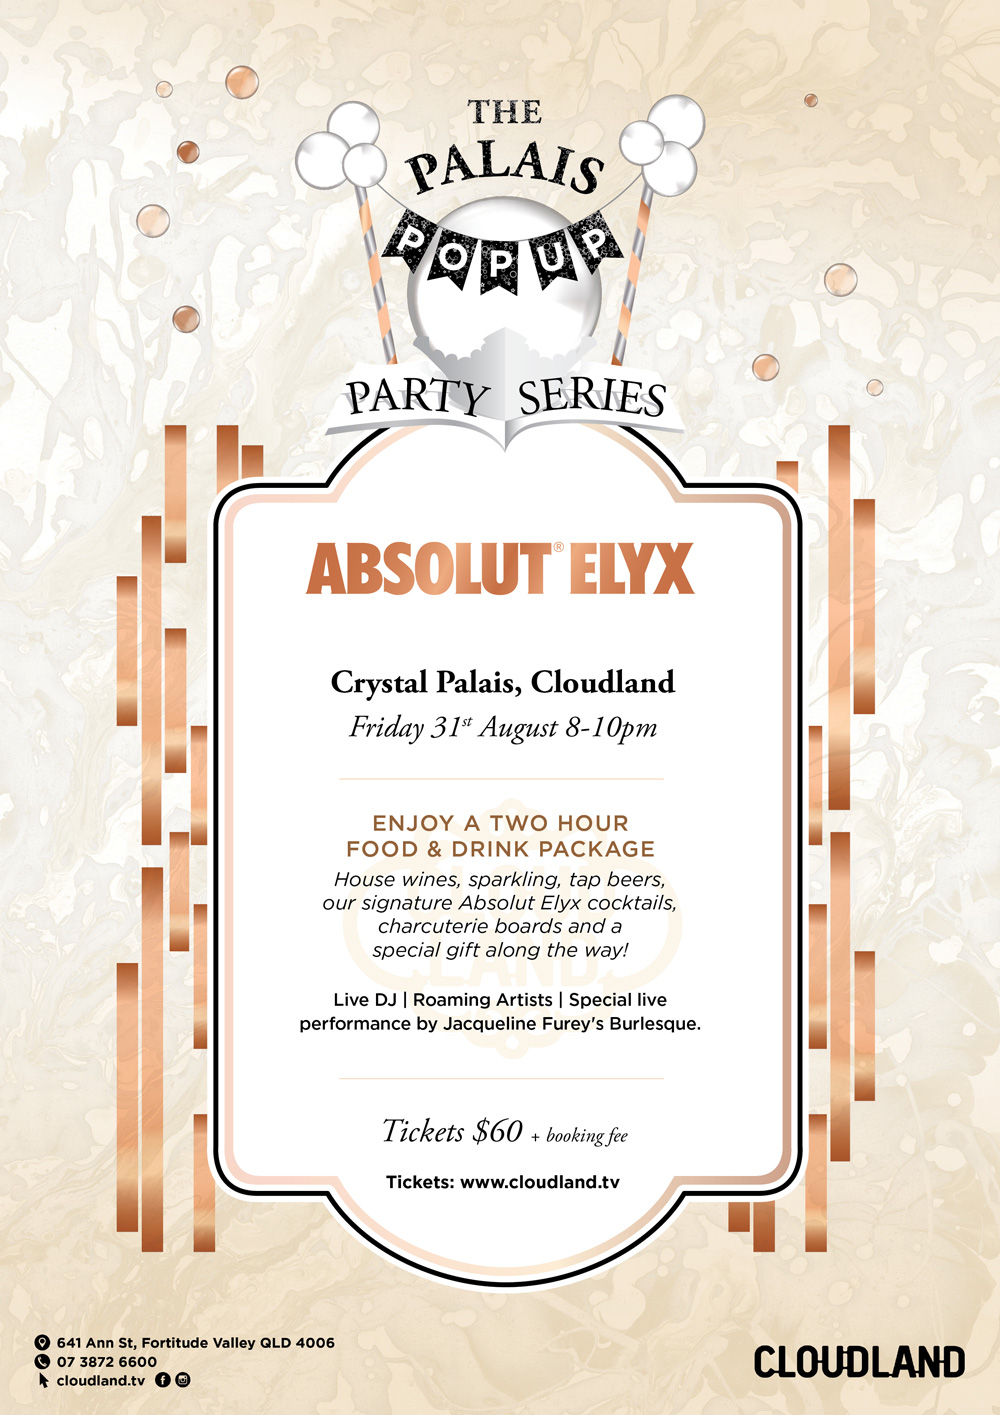 Cloudland Palais Pop Up Party Series Absolut Elyx